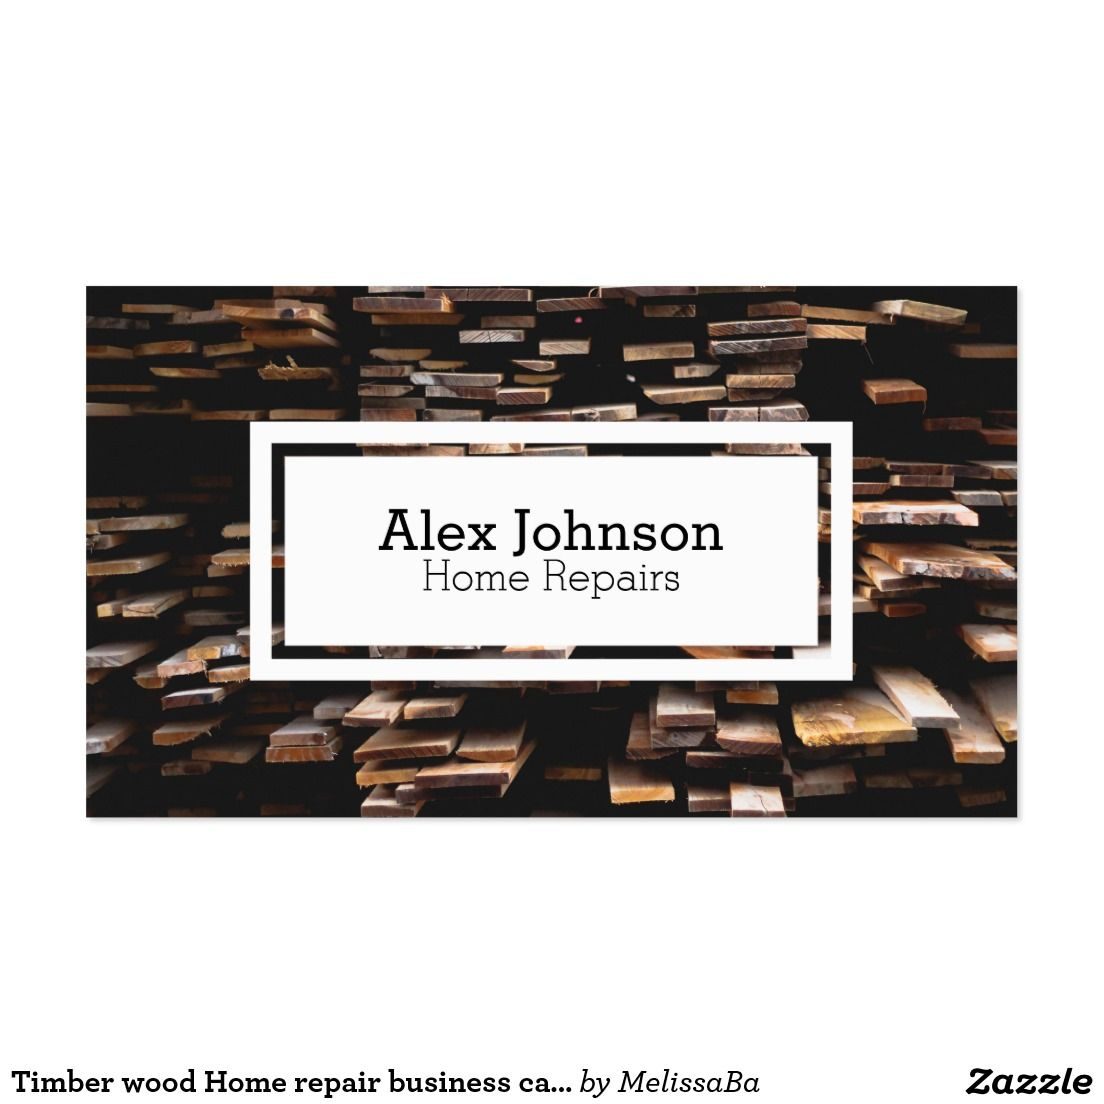 Timber wood Home repair business card | Timber wood, Business cards ...